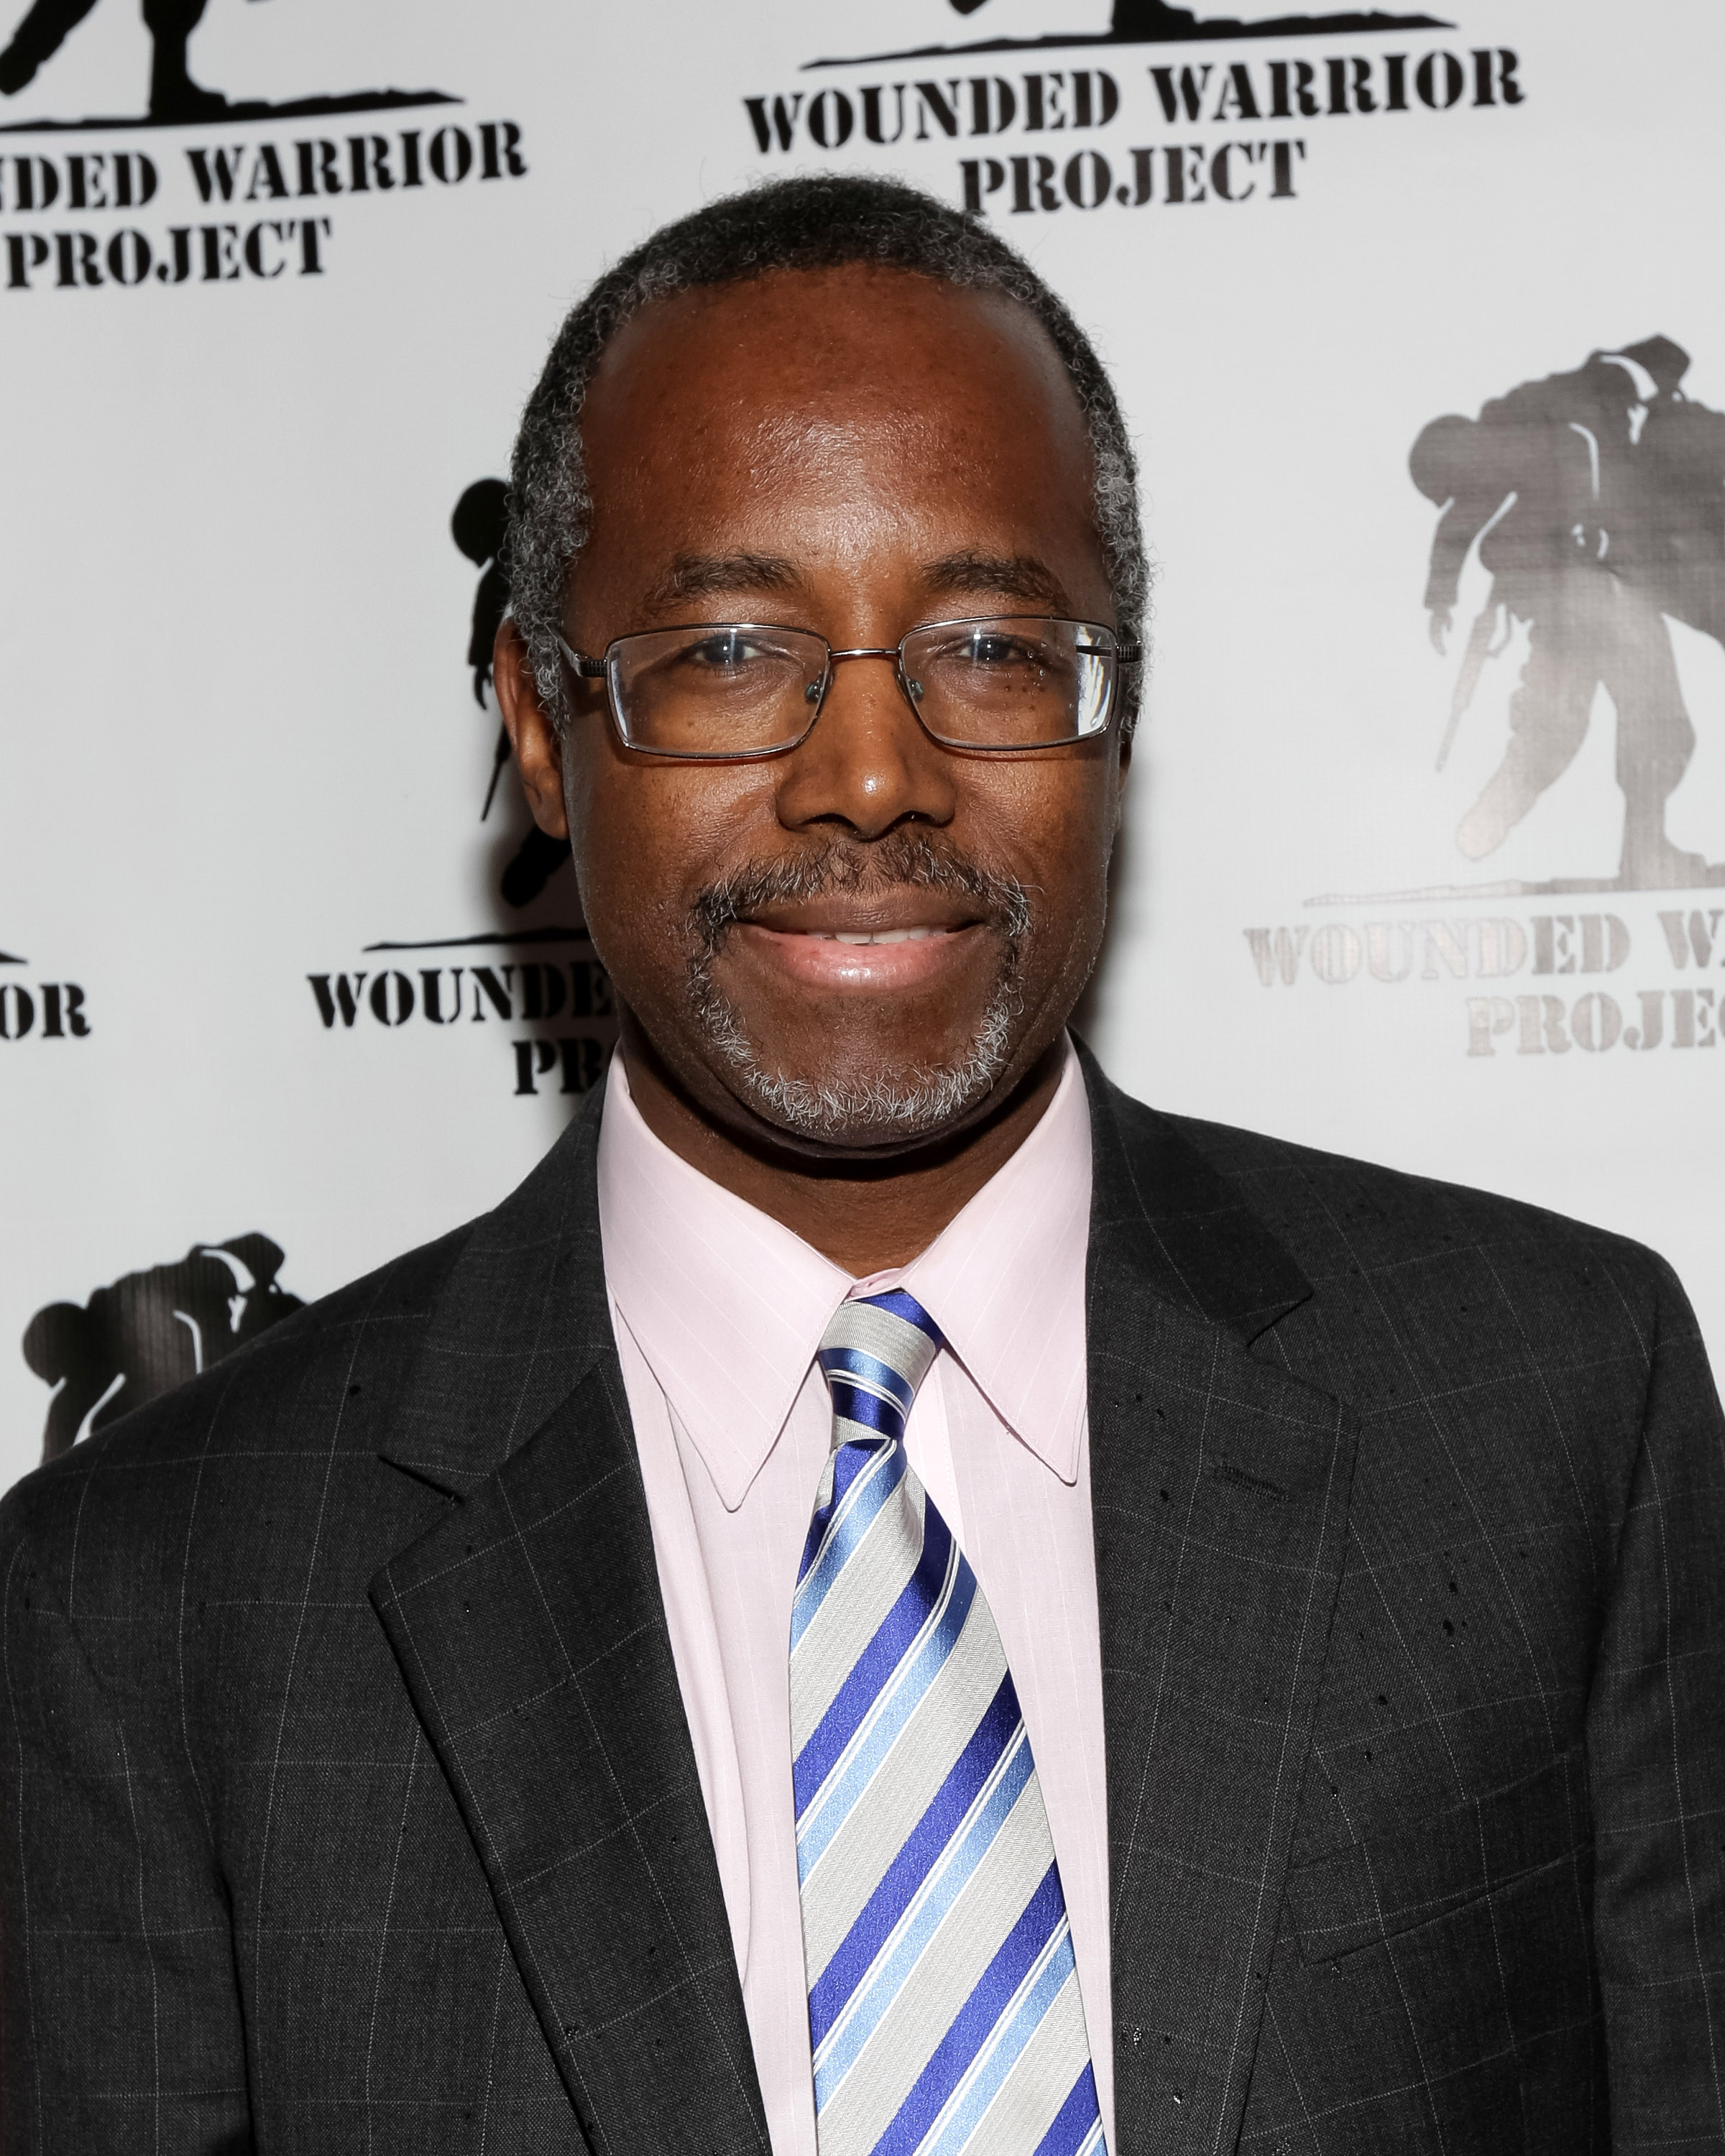 Ben Carson at the 2014 Wounded Warrior Project Benefit on November 17, 2014 in New York City.